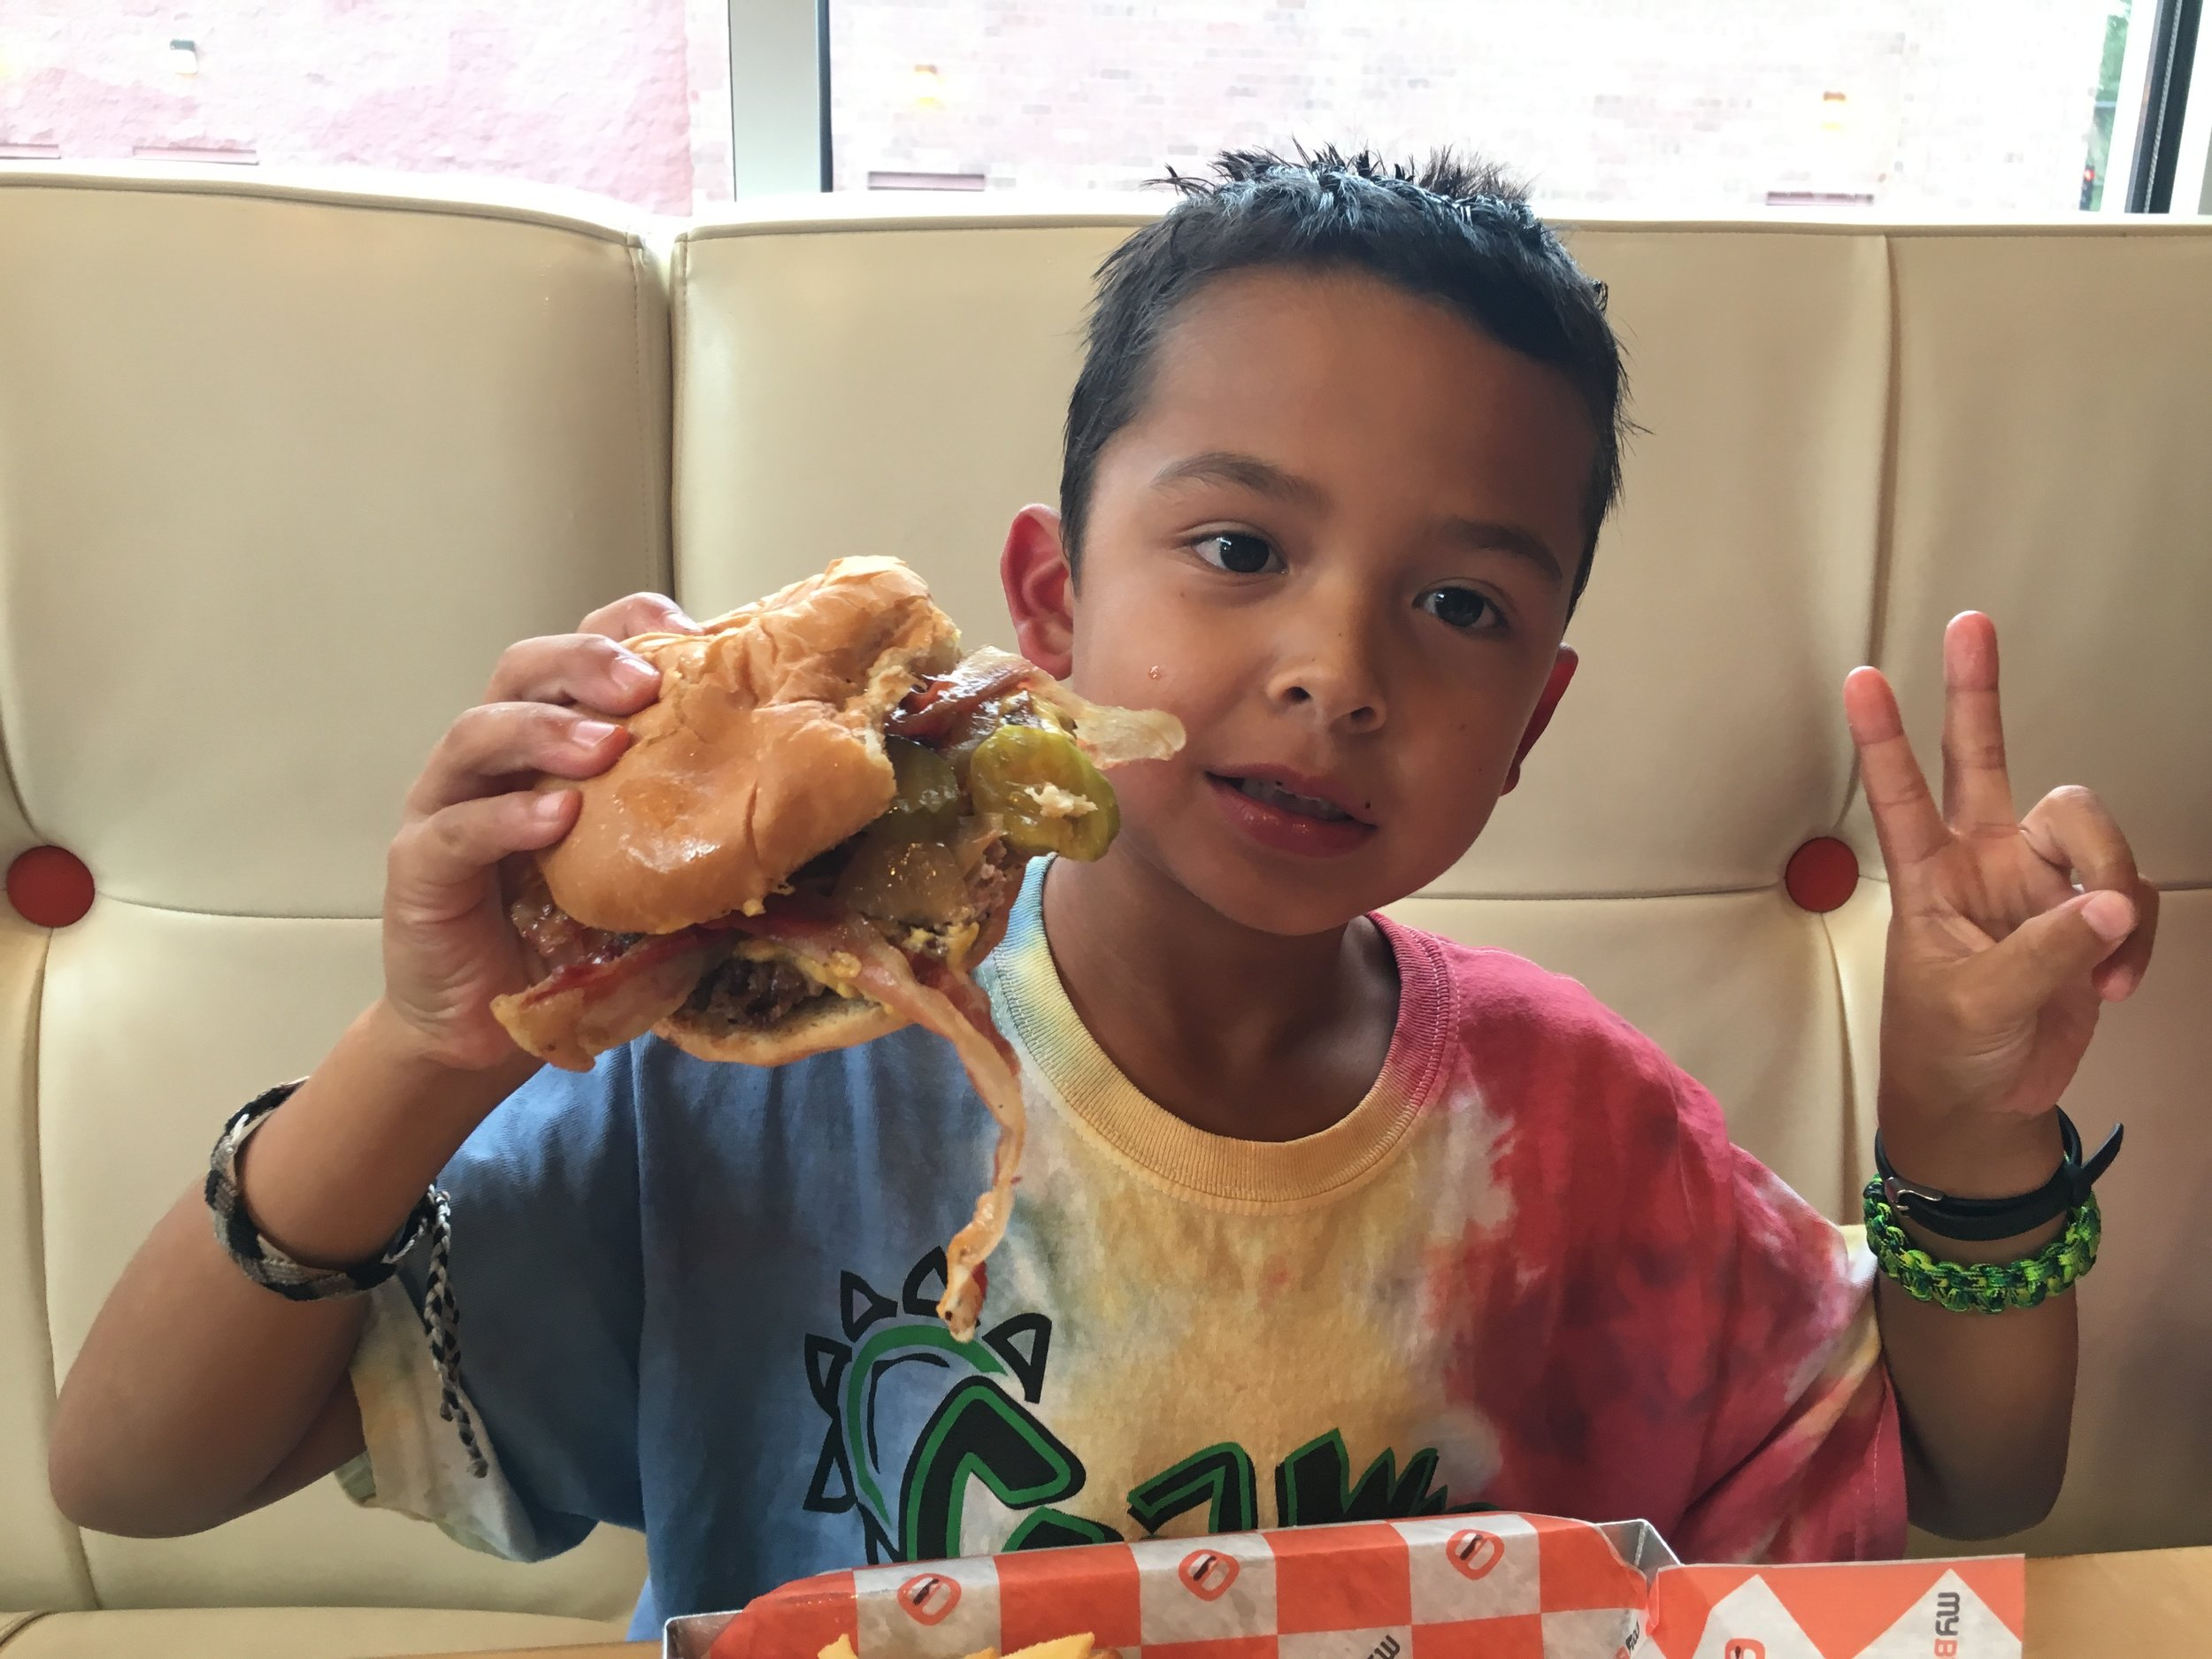 Instagram Message: His favorite food. Hamburger Day is Sunday, May 28th. Read the blog.